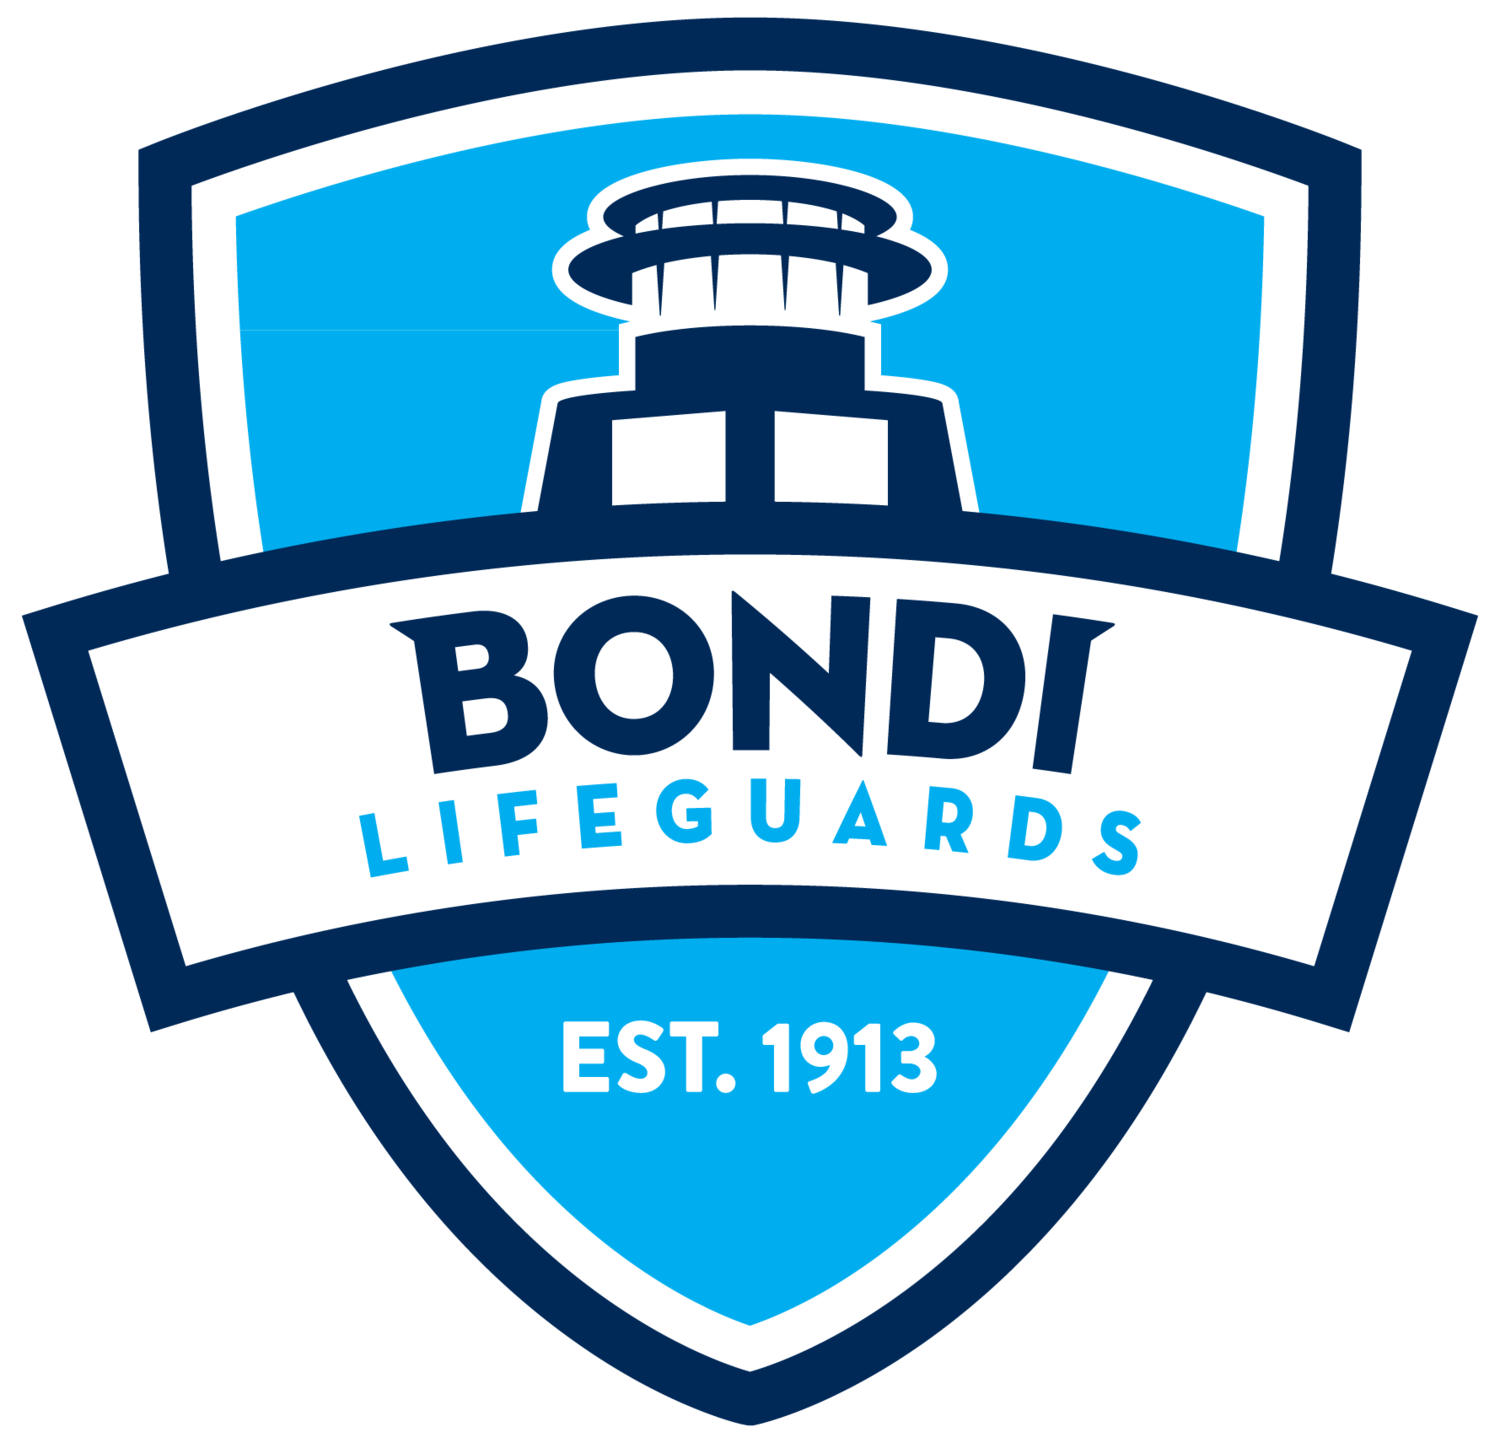 Bondi Lifeguards